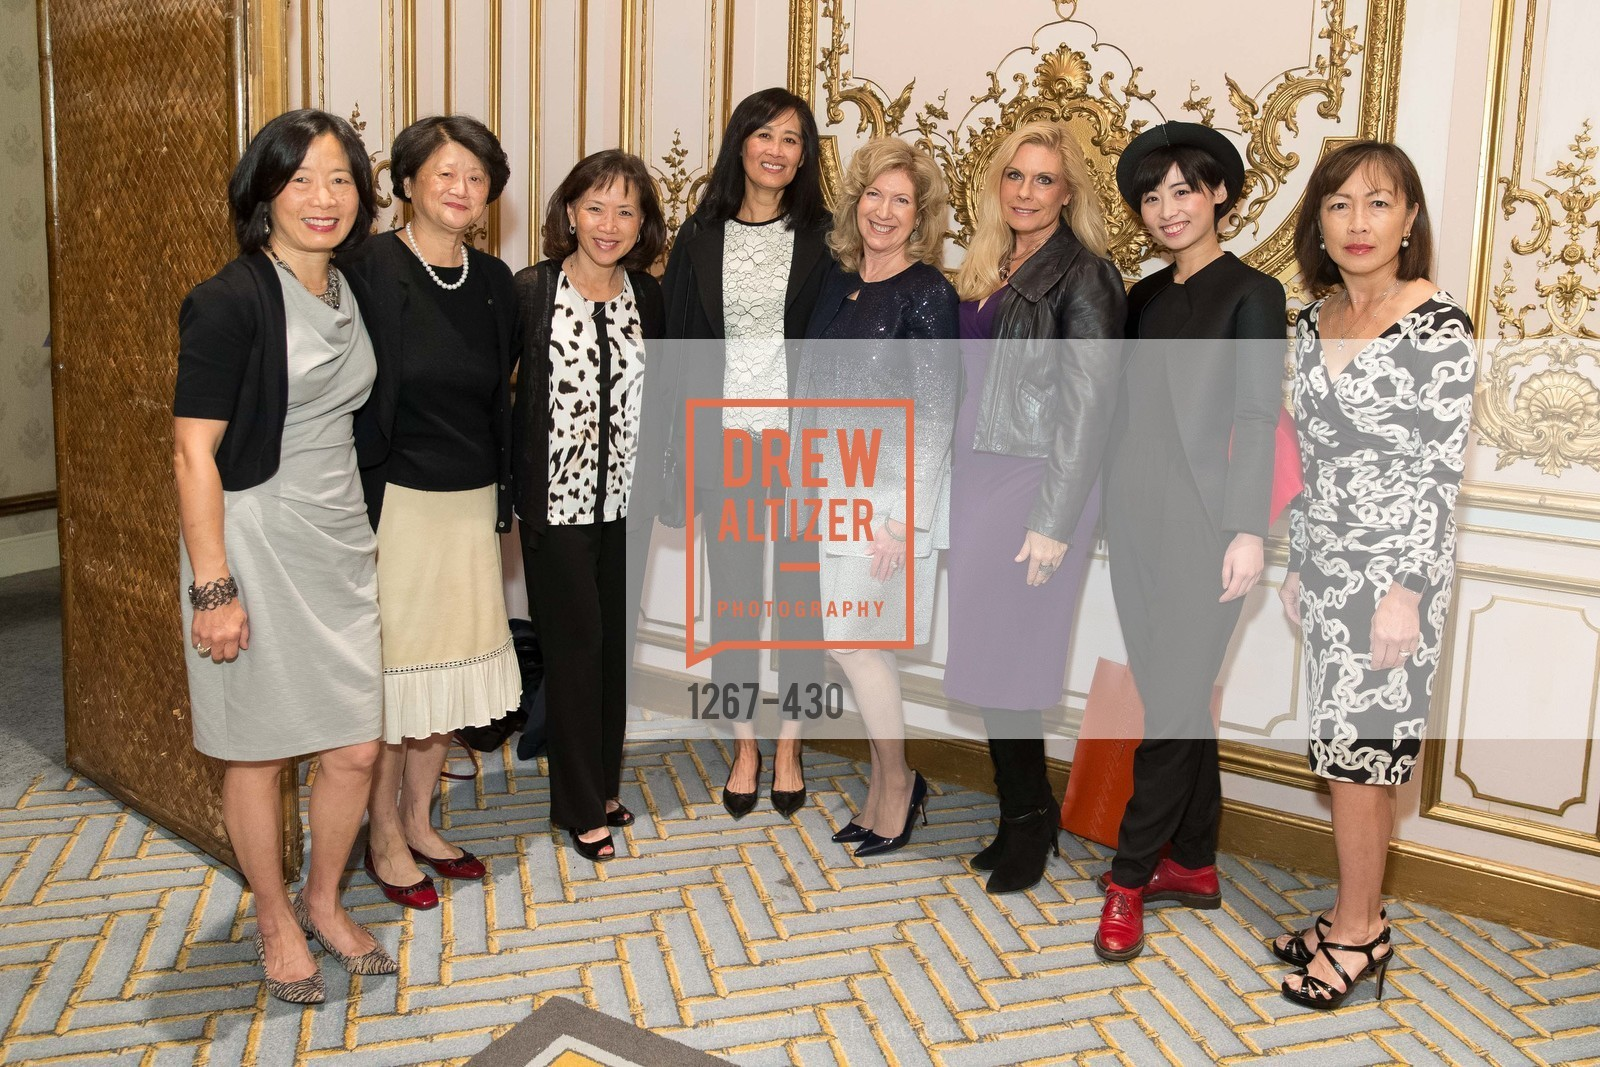 Juannie Eng, Maelin Wang, Lorraine Young, Shirley Liu, Celste Woo, Yuka Uehara, Bev Chung, Jacqueline Jacoby, The Arthritis Foundation Presents FASHION FIGHTS ARTHRITIS featuring St. John, Fairmont Hotel, Ballroom. 950 Mason Street, October 30th, 2015,Drew Altizer, Drew Altizer Photography, full-service agency, private events, San Francisco photographer, photographer california